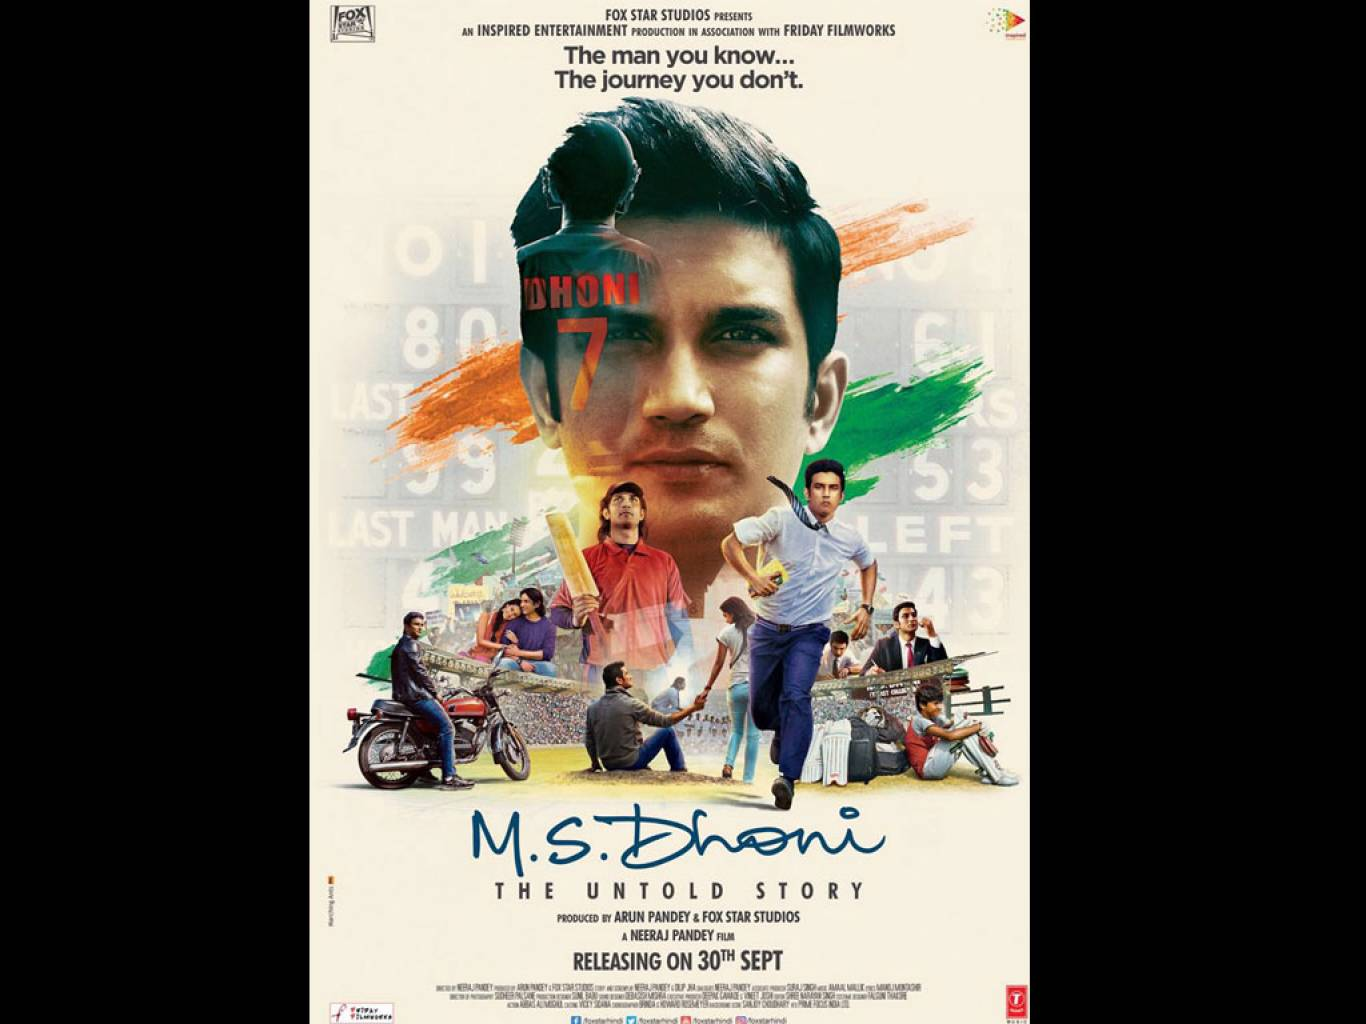 M.S. Dhoni: The Untold Story Wallpapers